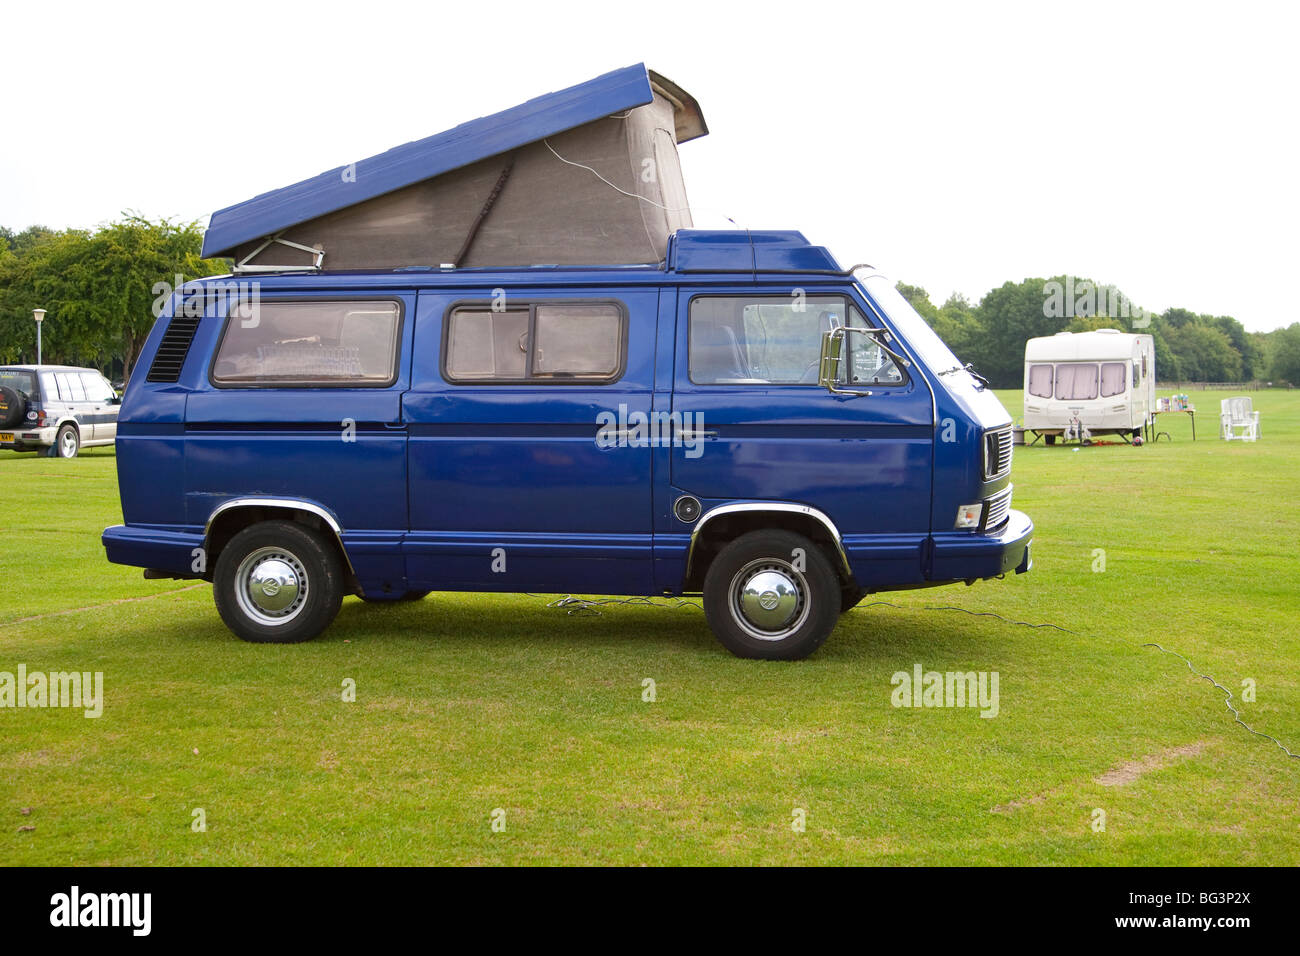 Vw Transporter High Resolution Stock Photography And Images Alamy